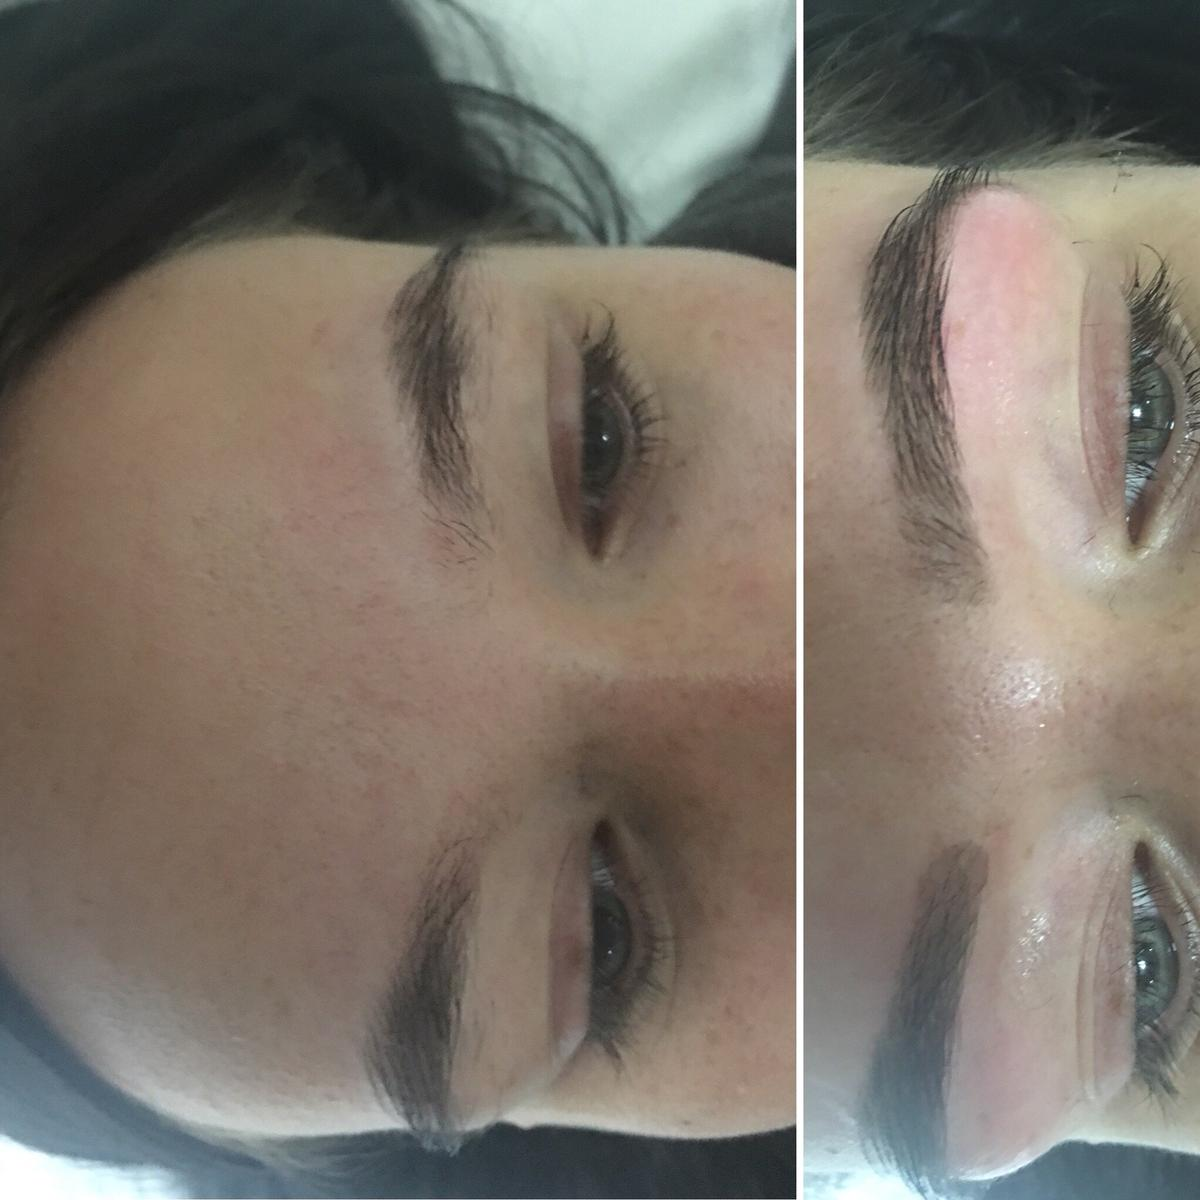 HD Eyebrows and beauty treatments in BB2 Blackburn for £3 00 for